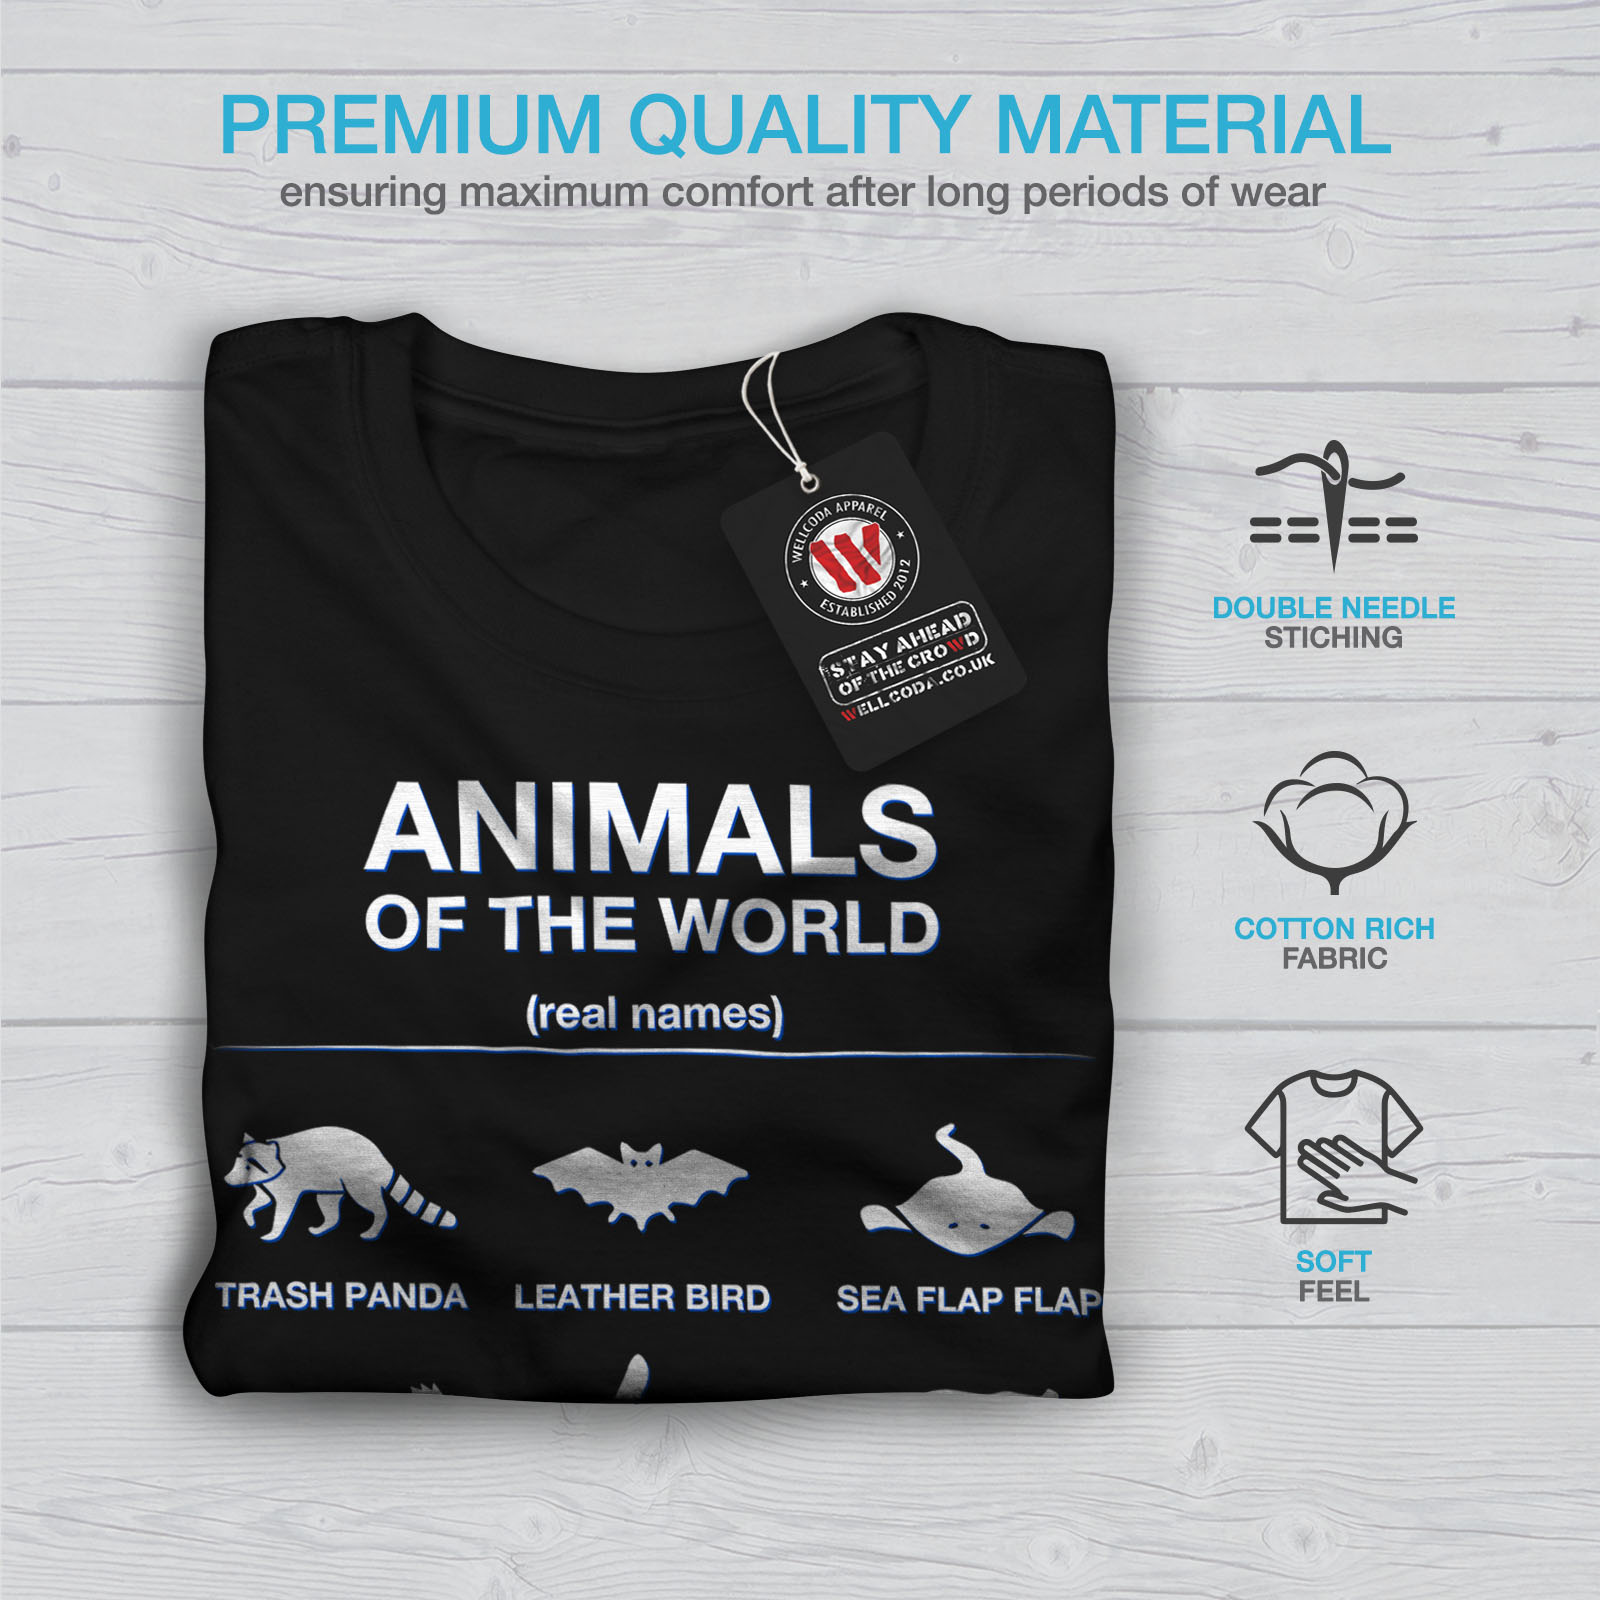 Details about Wellcoda Animals Funny Cute Womens Long Sleeve T-shirt,  Biology Casual Design